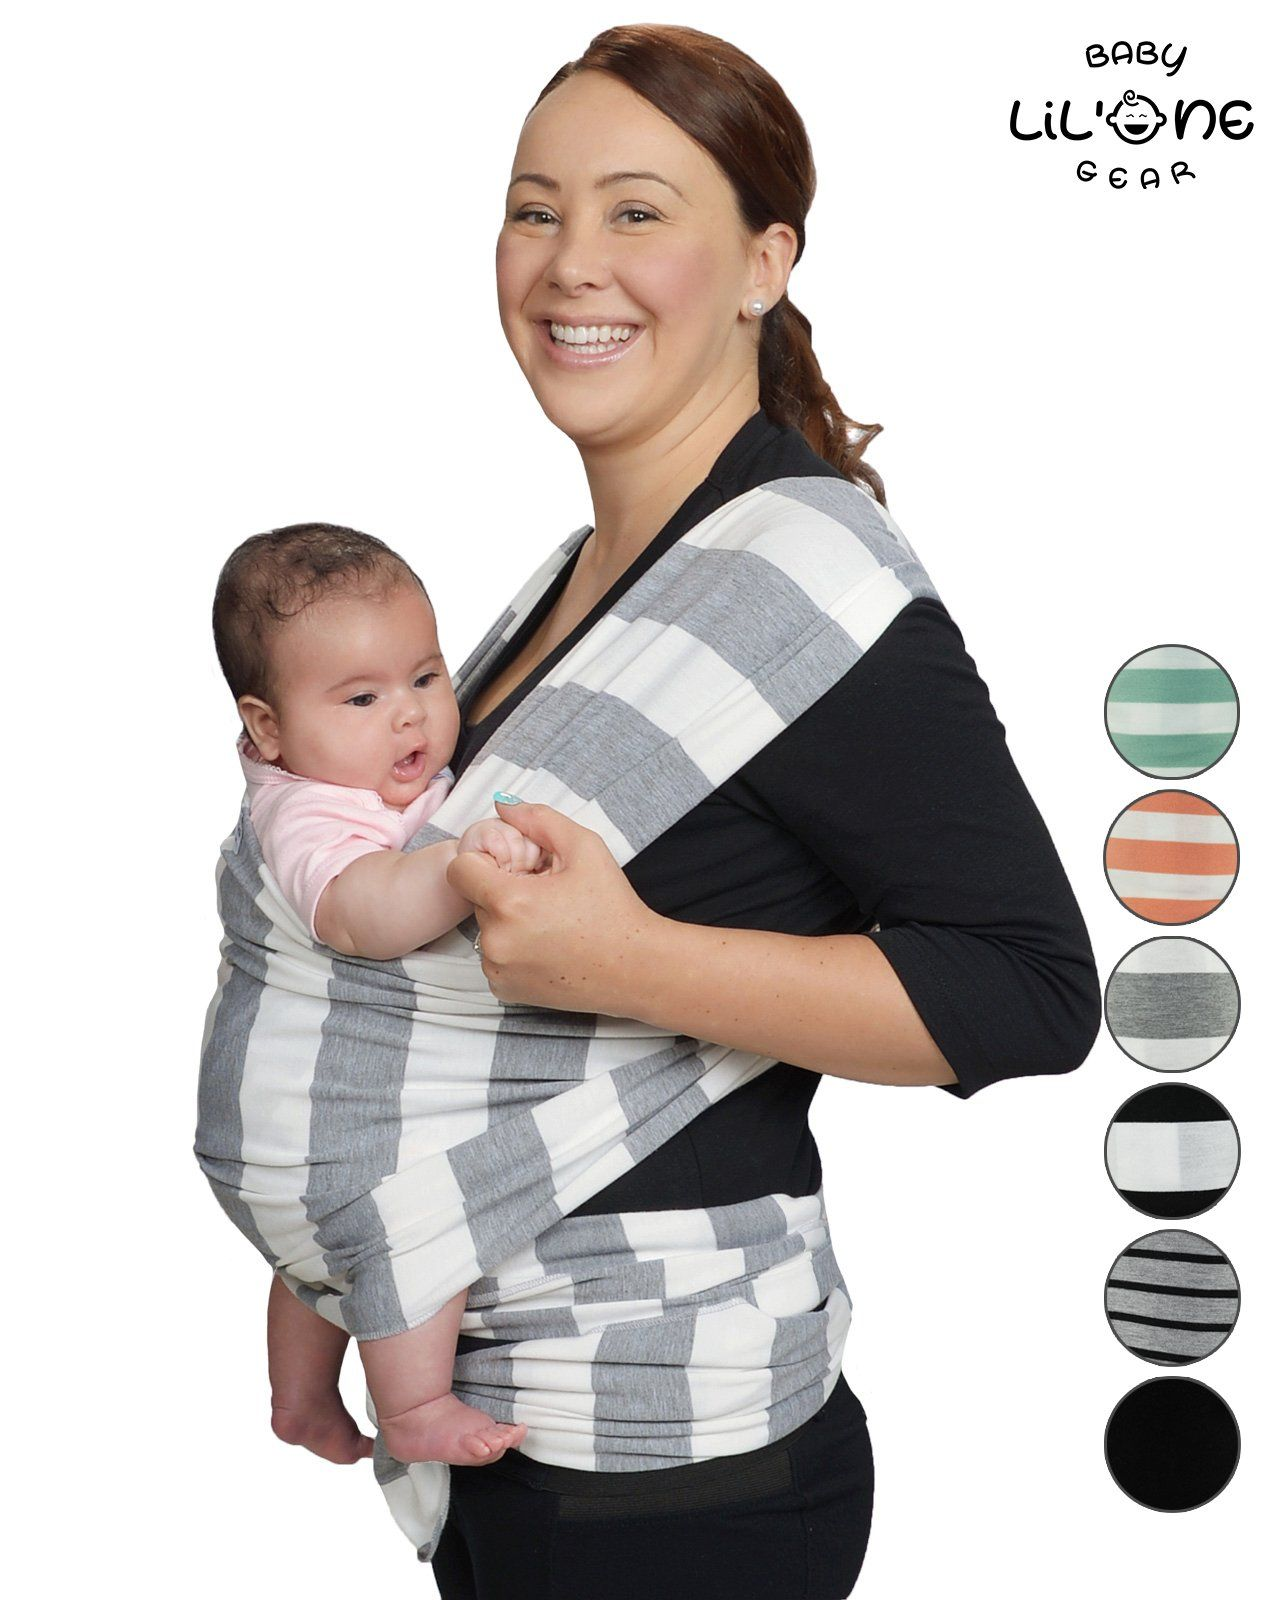 7cb1e58b73d Baby Wrap by Lil One Baby Gear Soft Breathable Cotton HandsFree Infant  Carrier Perfect Baby Shower Gift for Newborn 4in1 Baby Sling Baby Carrier  Wrap ...